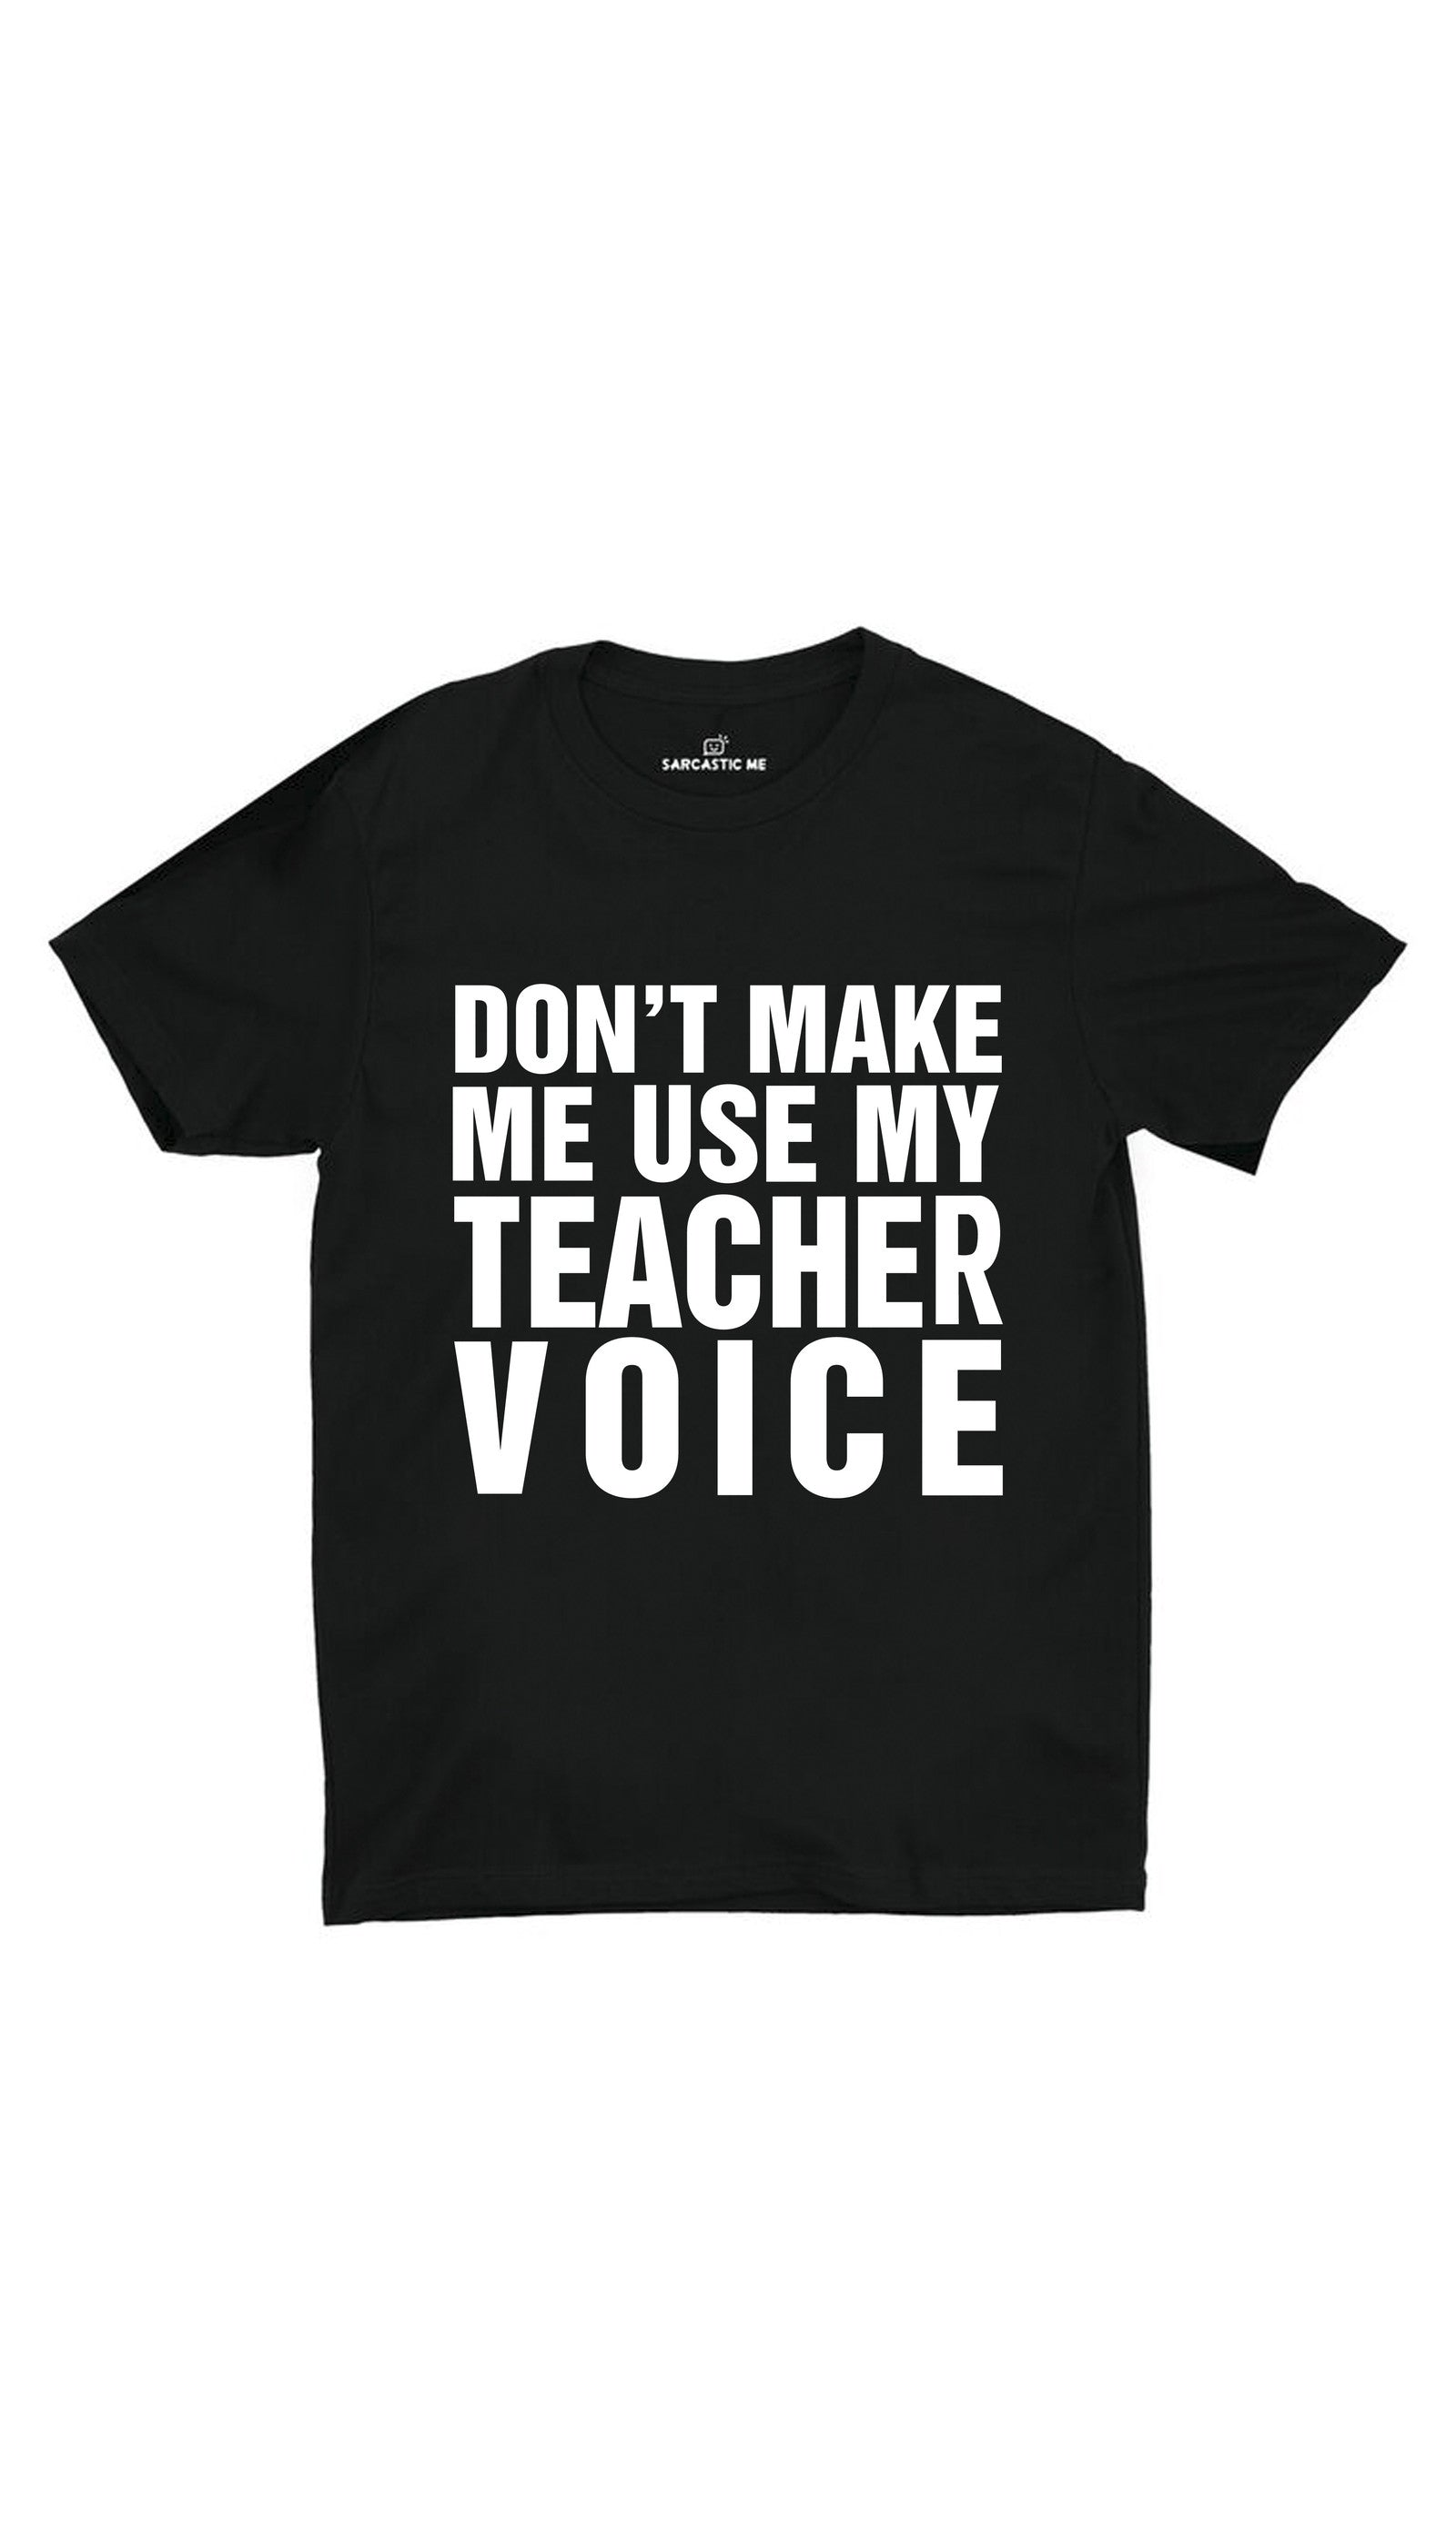 Don't Make Me Use My Teacher Voice Black Unisex T-shirt | Sarcastic ME